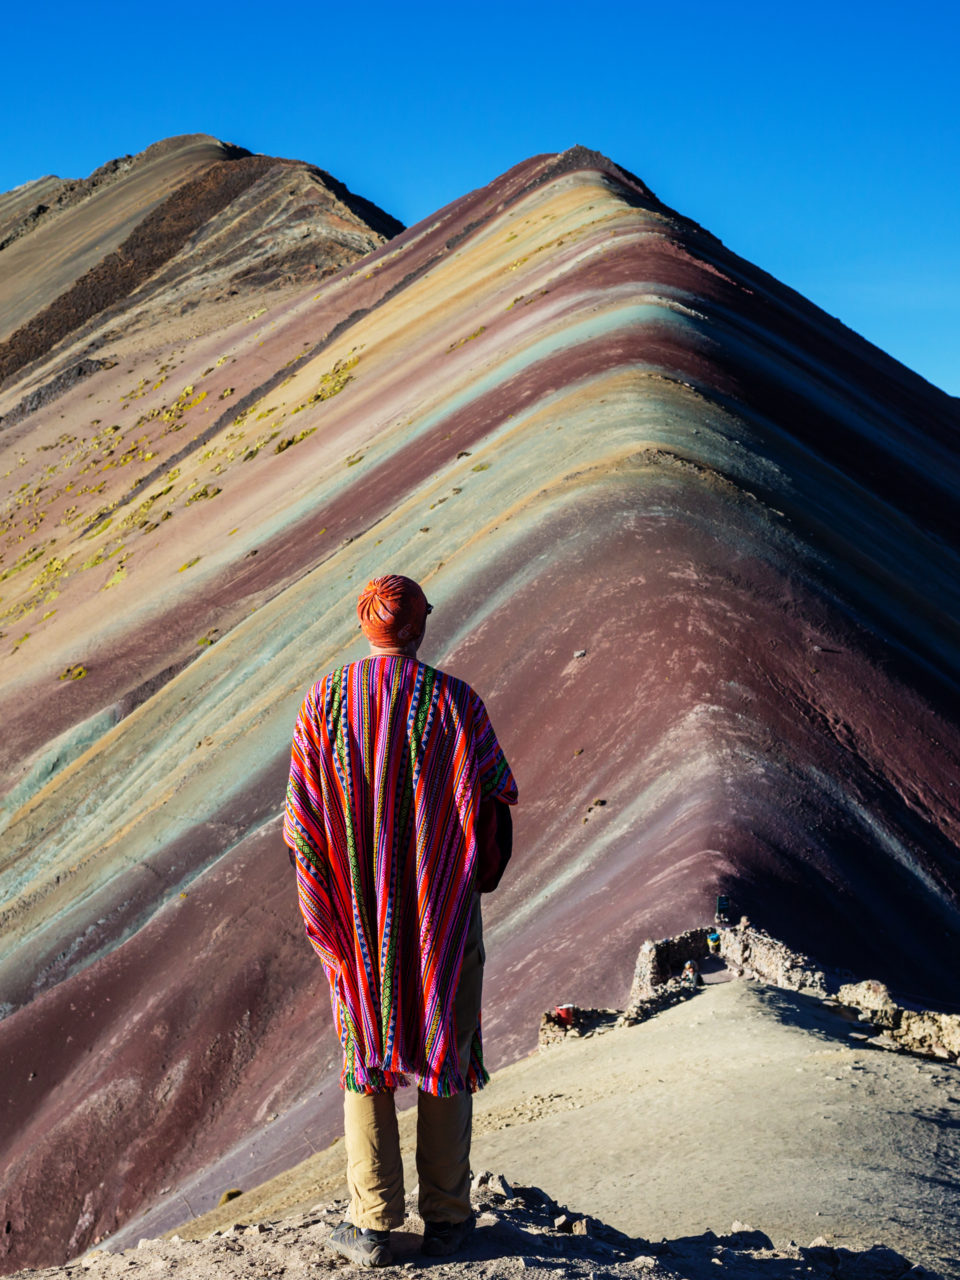 https://www.planetavenue.com/wp-content/uploads/2019/06/rainbow-mountain-PH4CFB7-960x1280.jpg